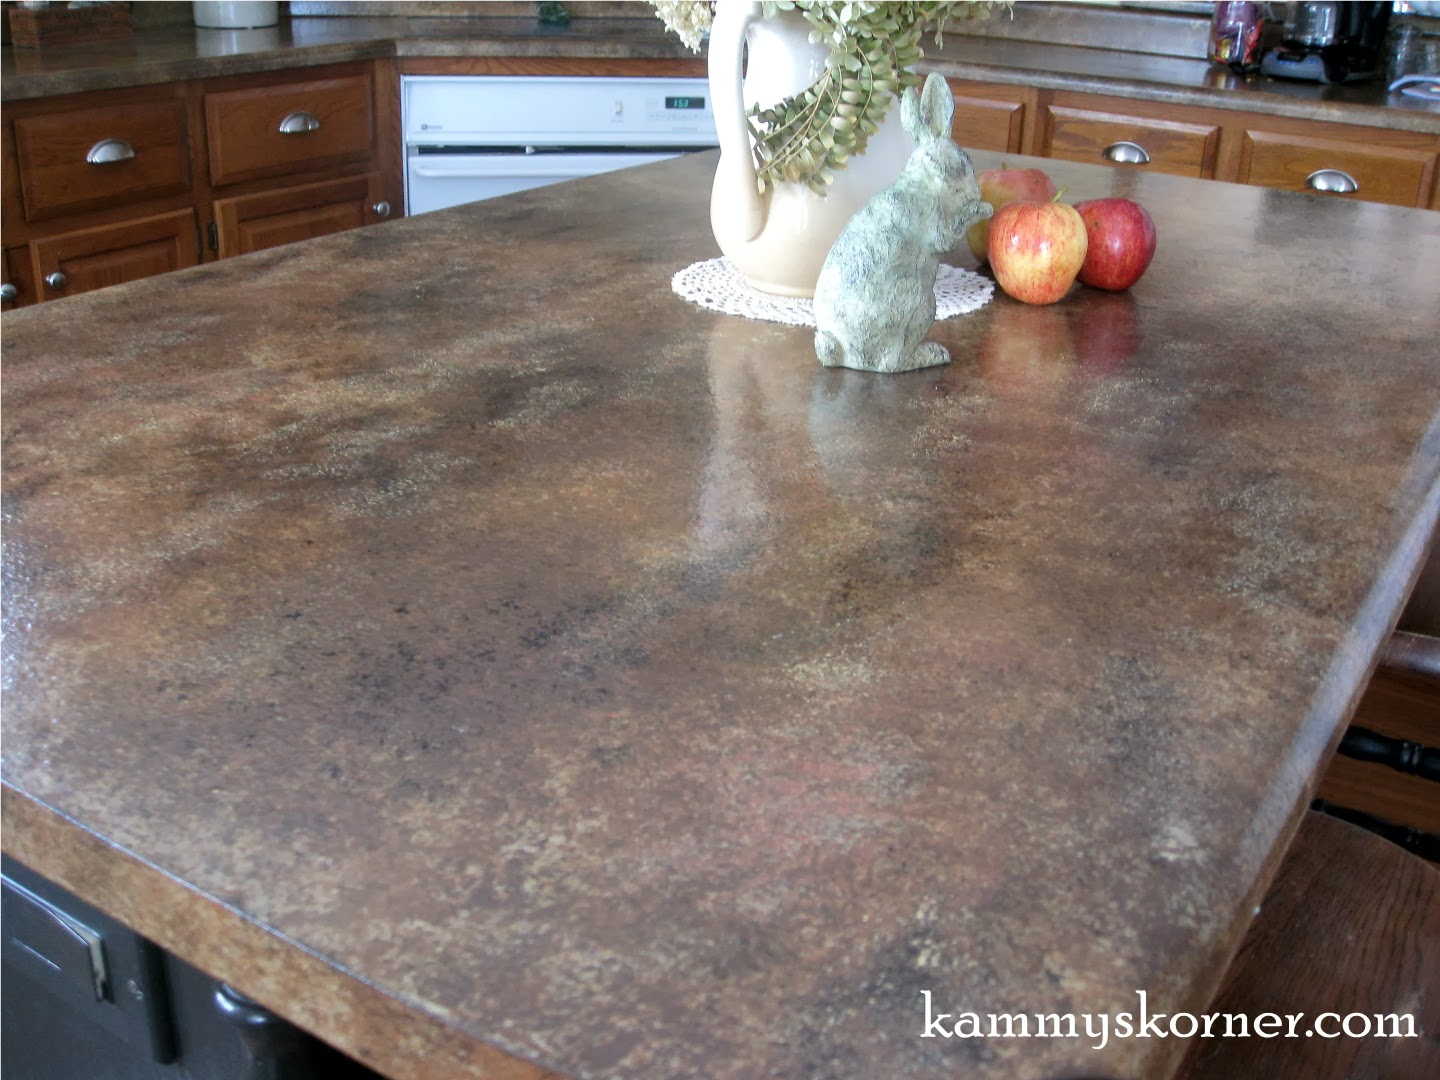 Kammy's Korner: Painted Faux Granite Counter Tops {With ...